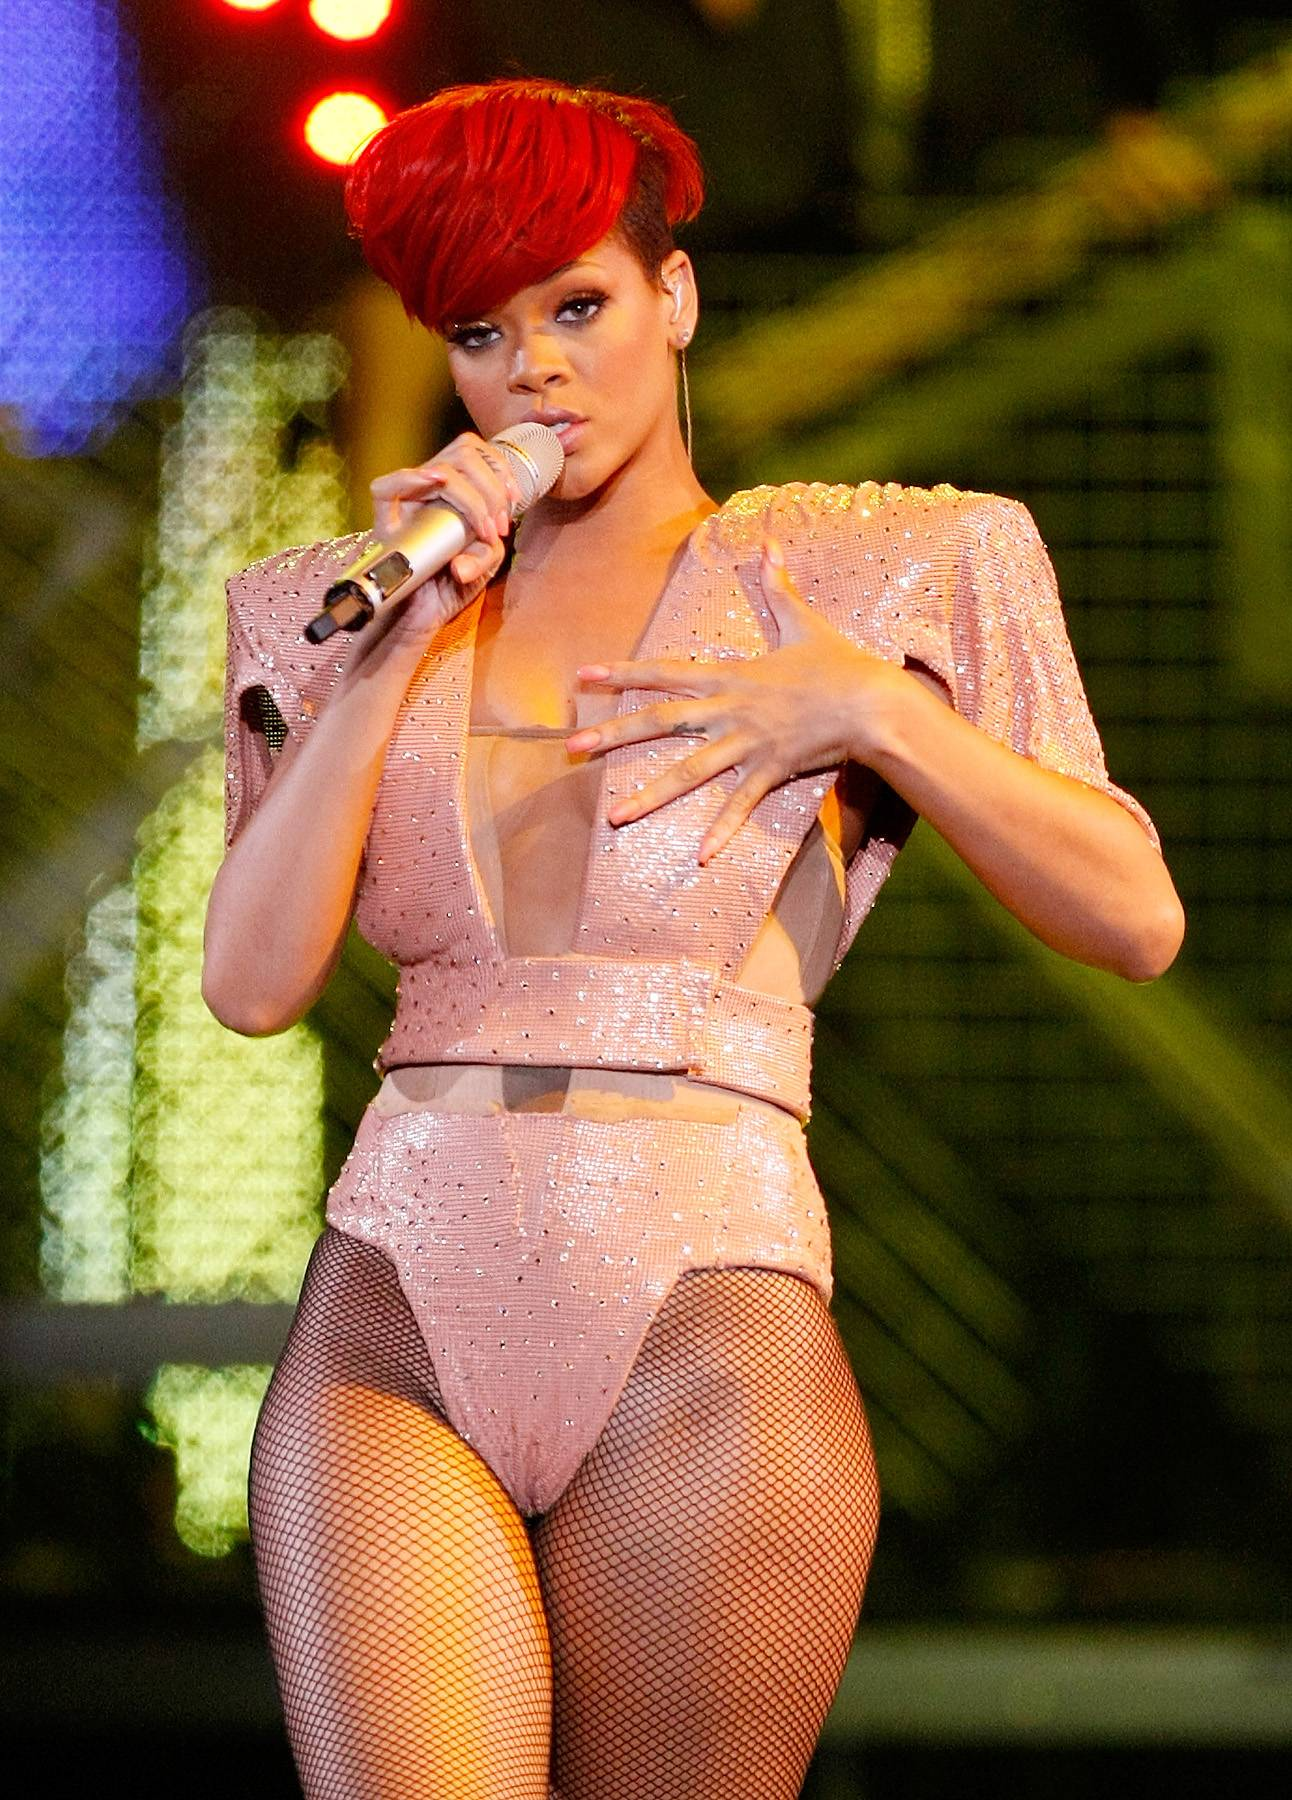 Fire Bomb - Rihanna is like a chameleon when it comes to her hairstyles, but this fire-red mushroom cut is definitely one for the books!(Photo: Ethan Miller/Getty Images)